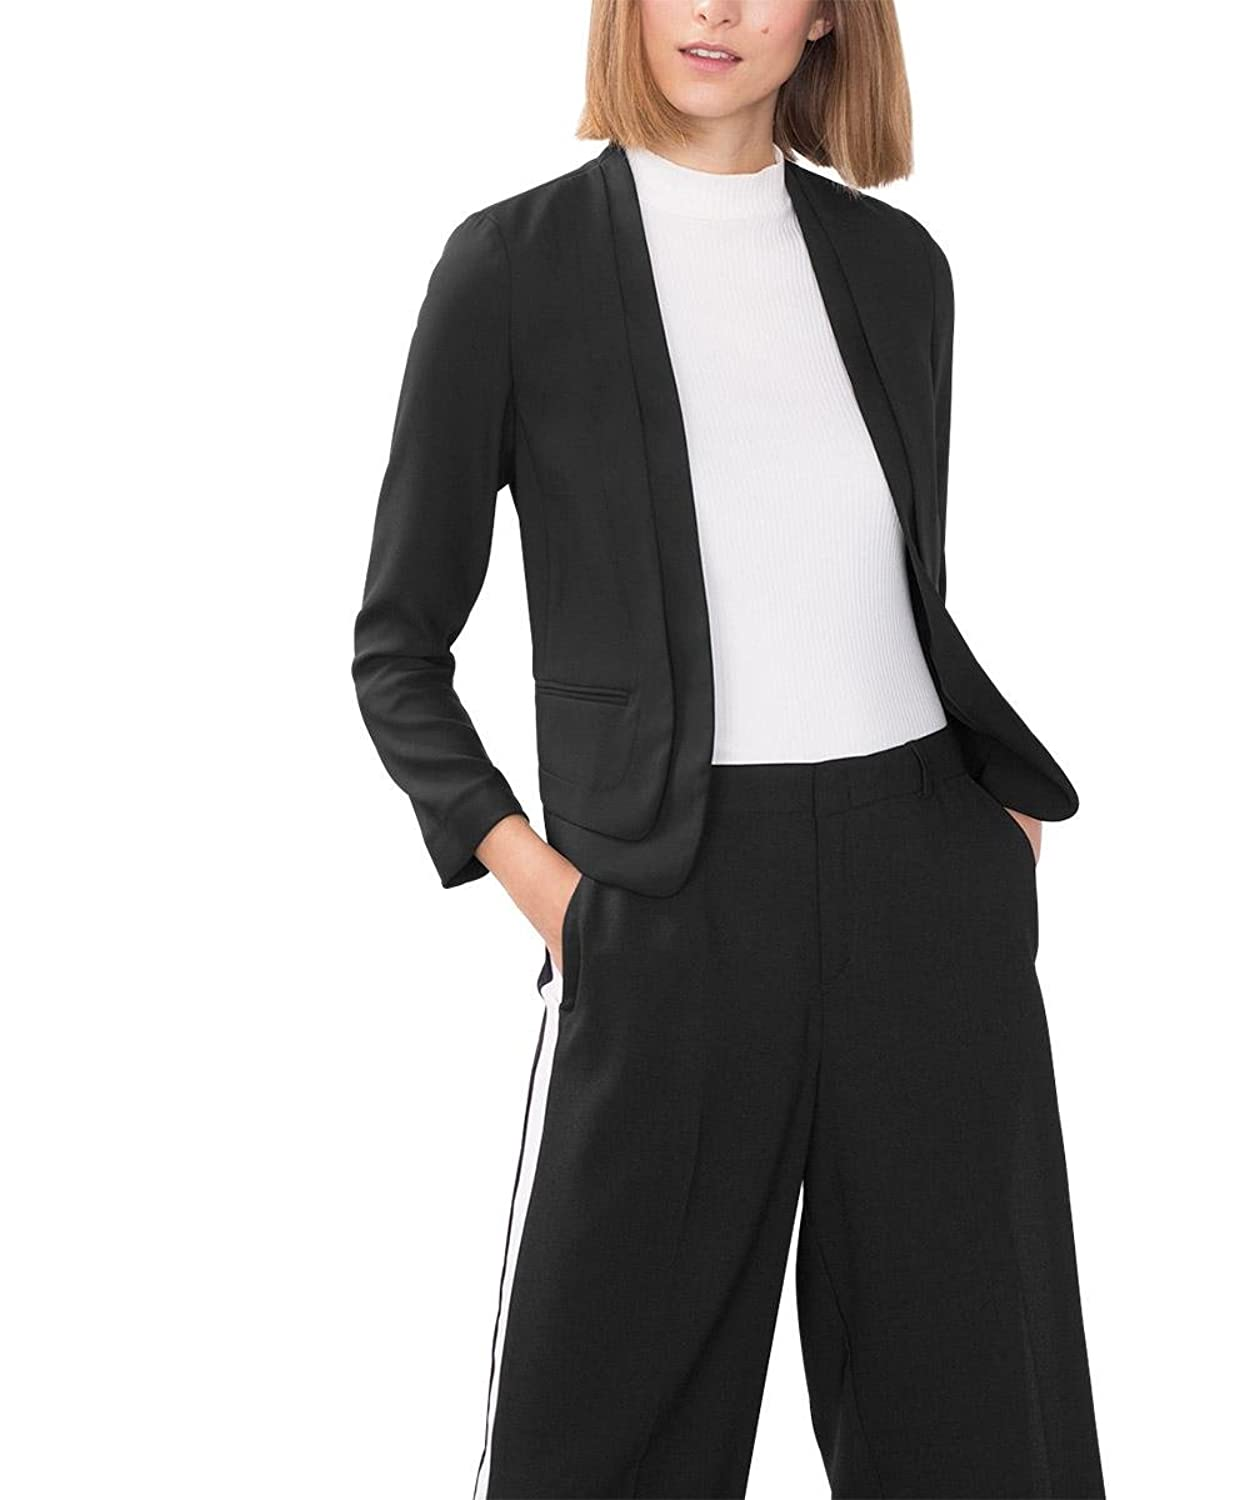 ESPRIT Collection Damen Blazer 086eo1g038 günstig online kaufen